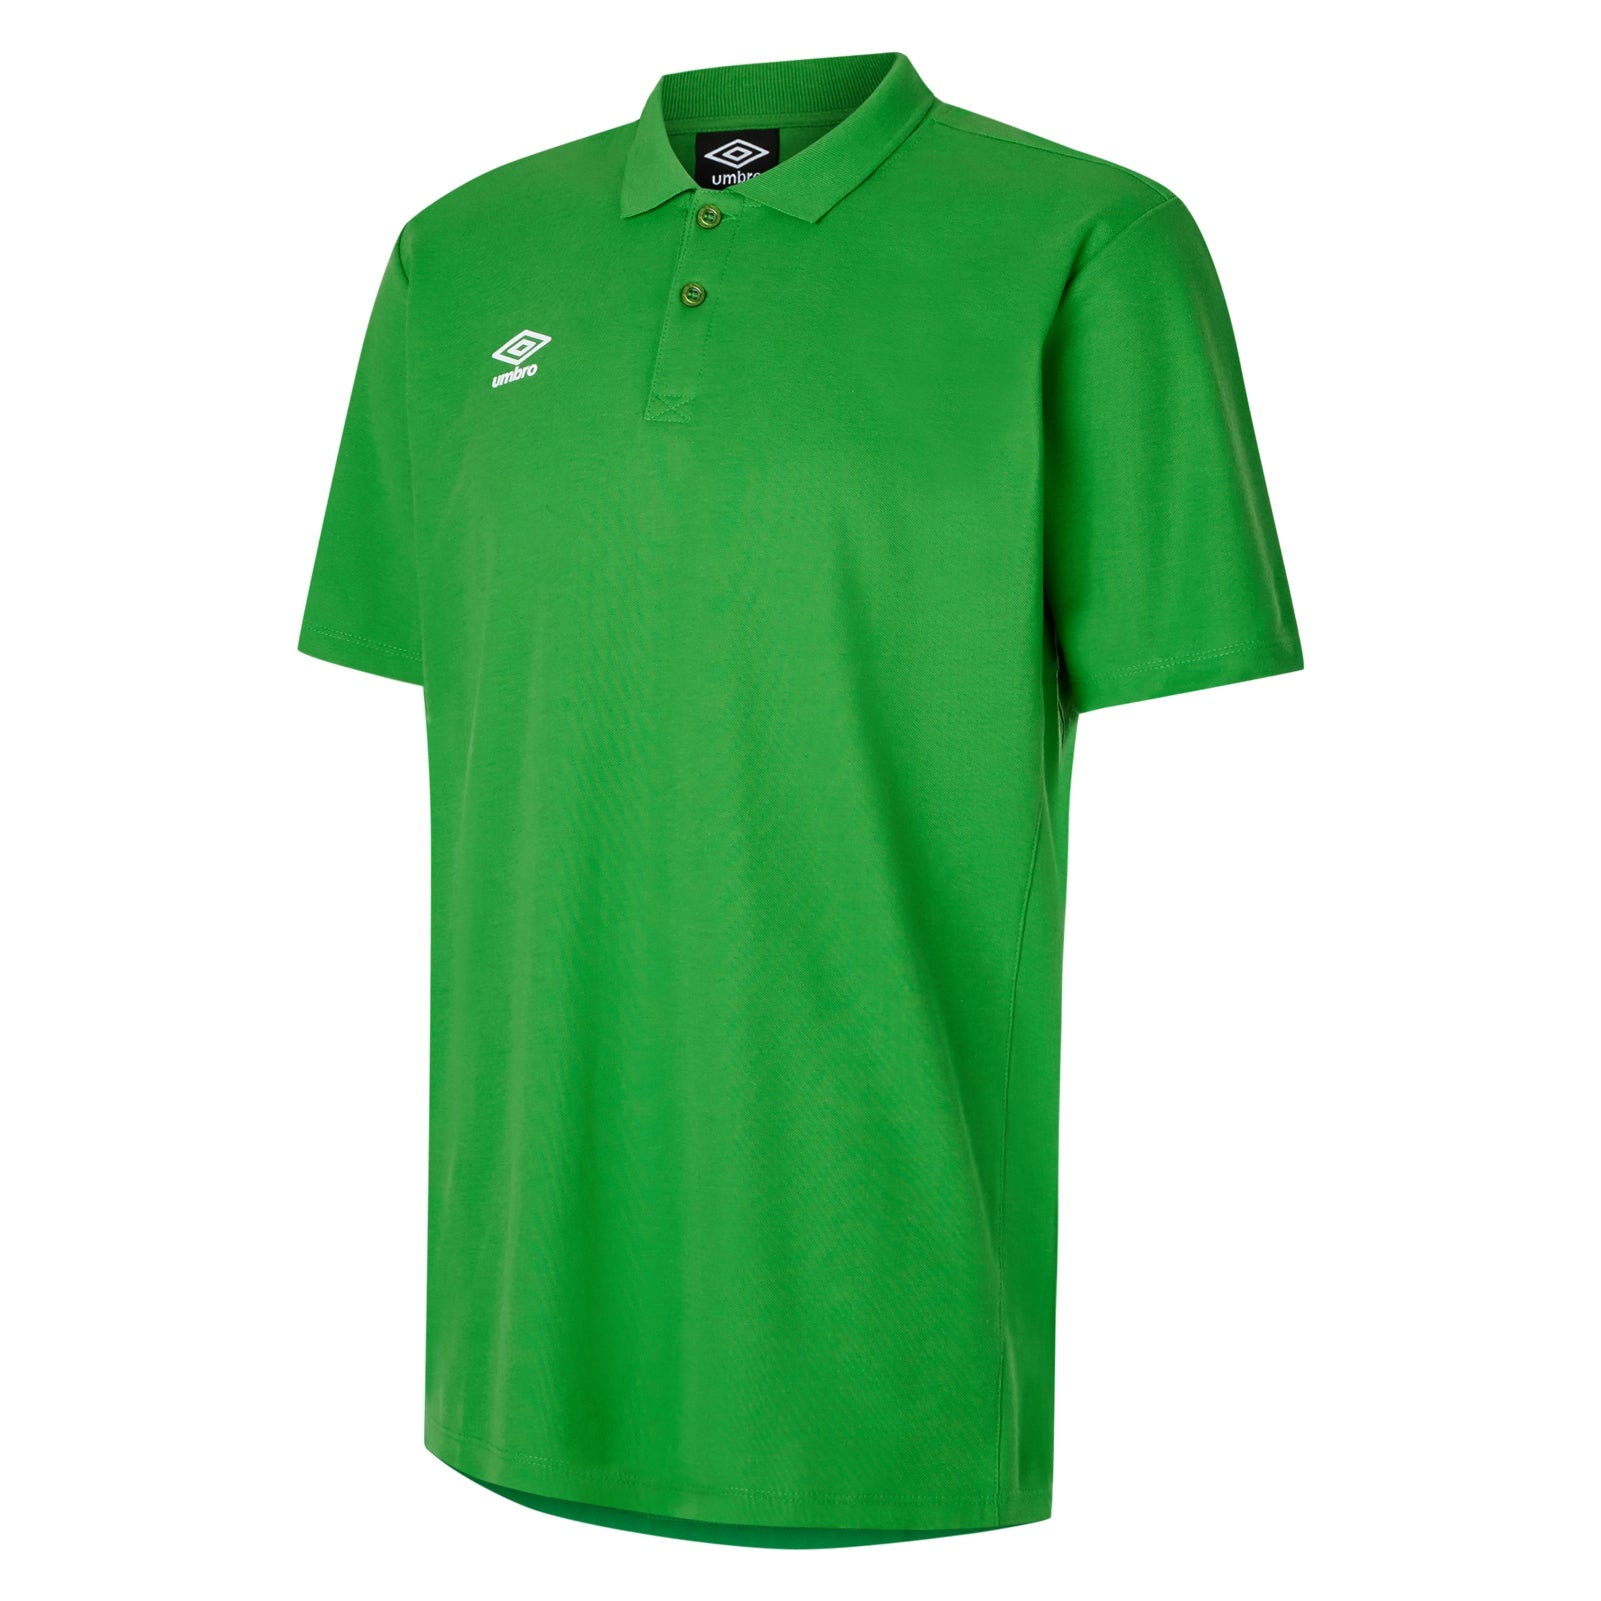 Umbro Club Essential Polo in emerald green with white Umbro Diamond logo on right chest